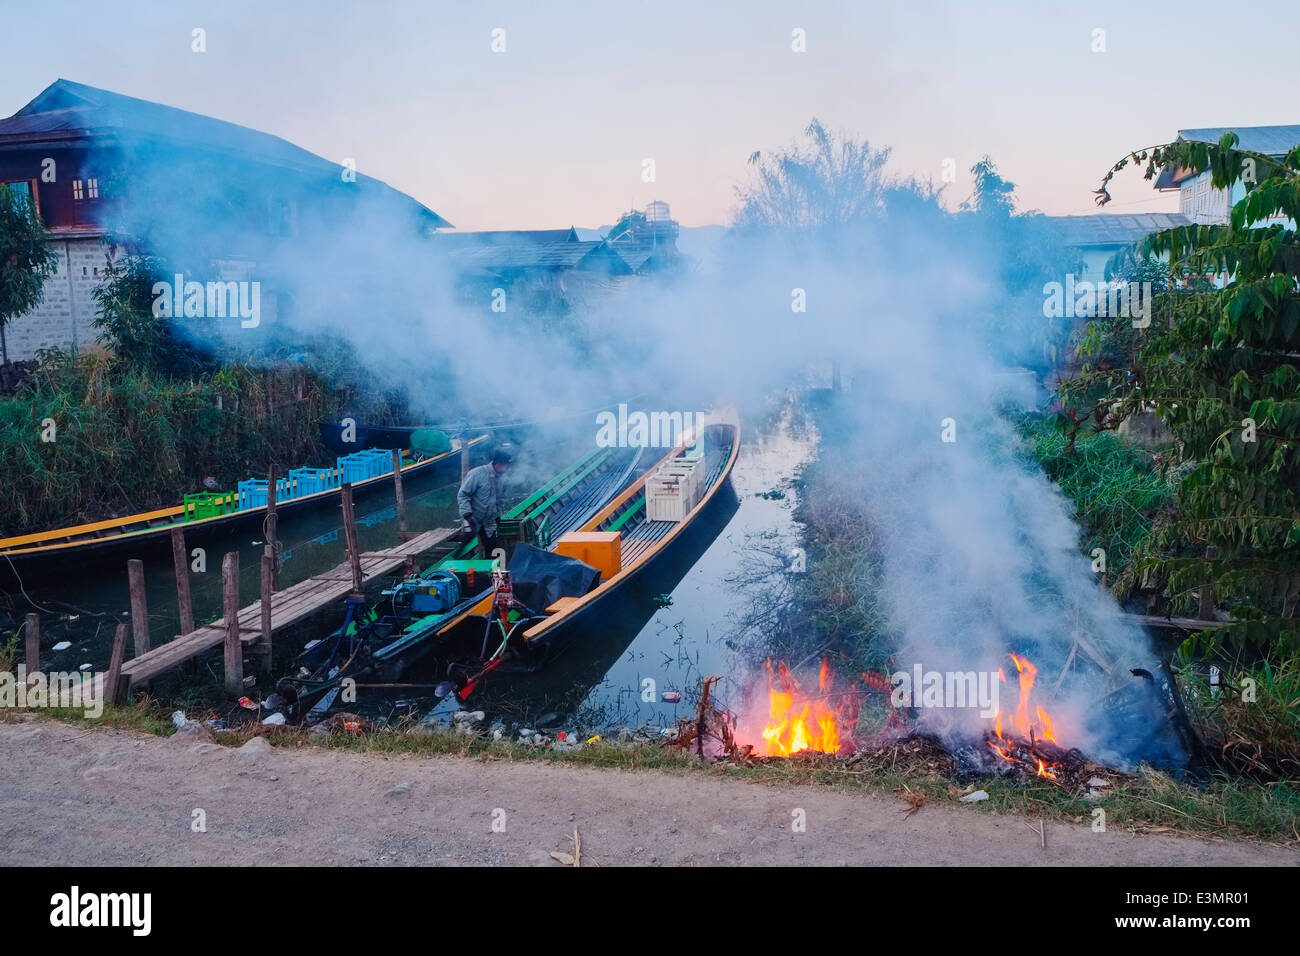 At the canal, Nyaung Shwe, Myanmar, Asia - Stock Image